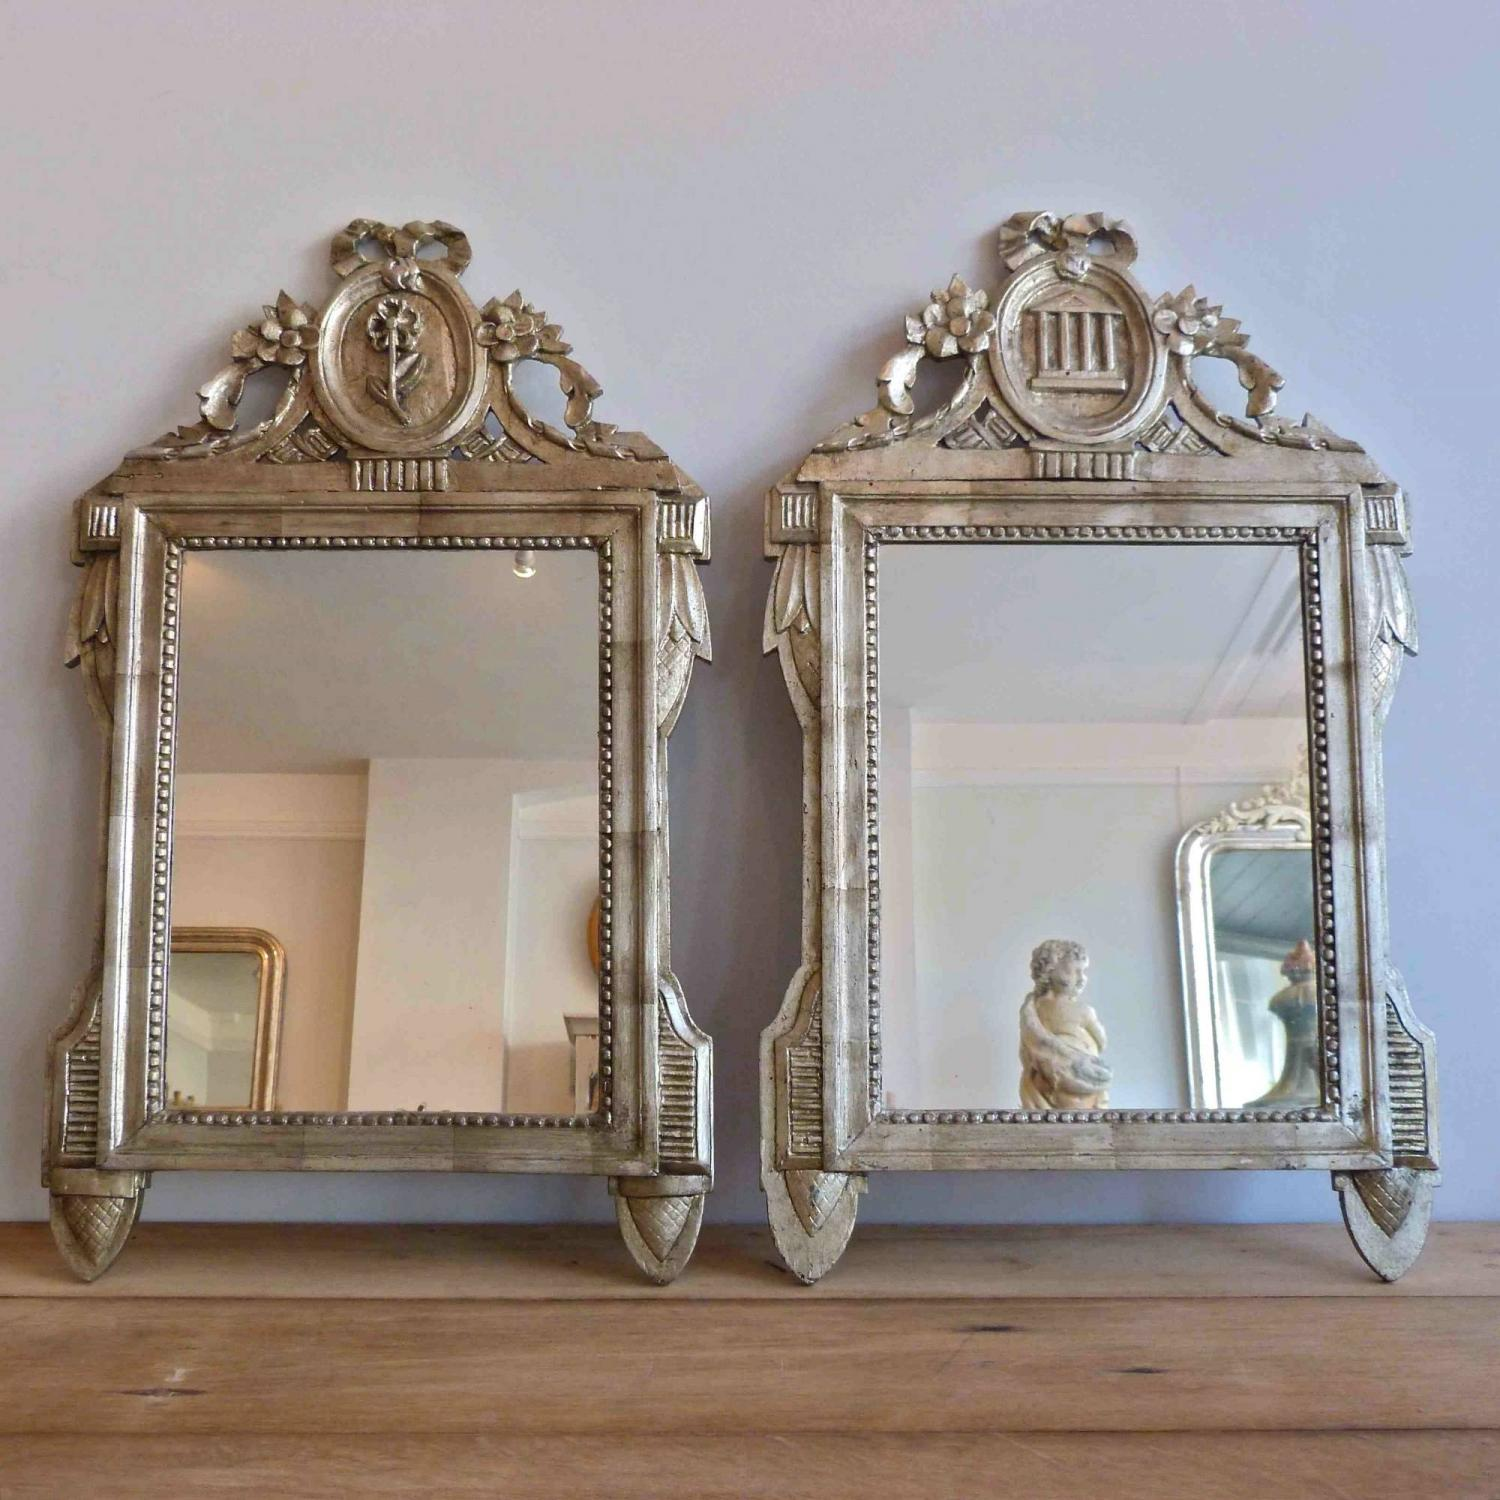 HARLEQUIN PAIR OF DECORATIVE SILVER GILT ITALIAN MIRRORS